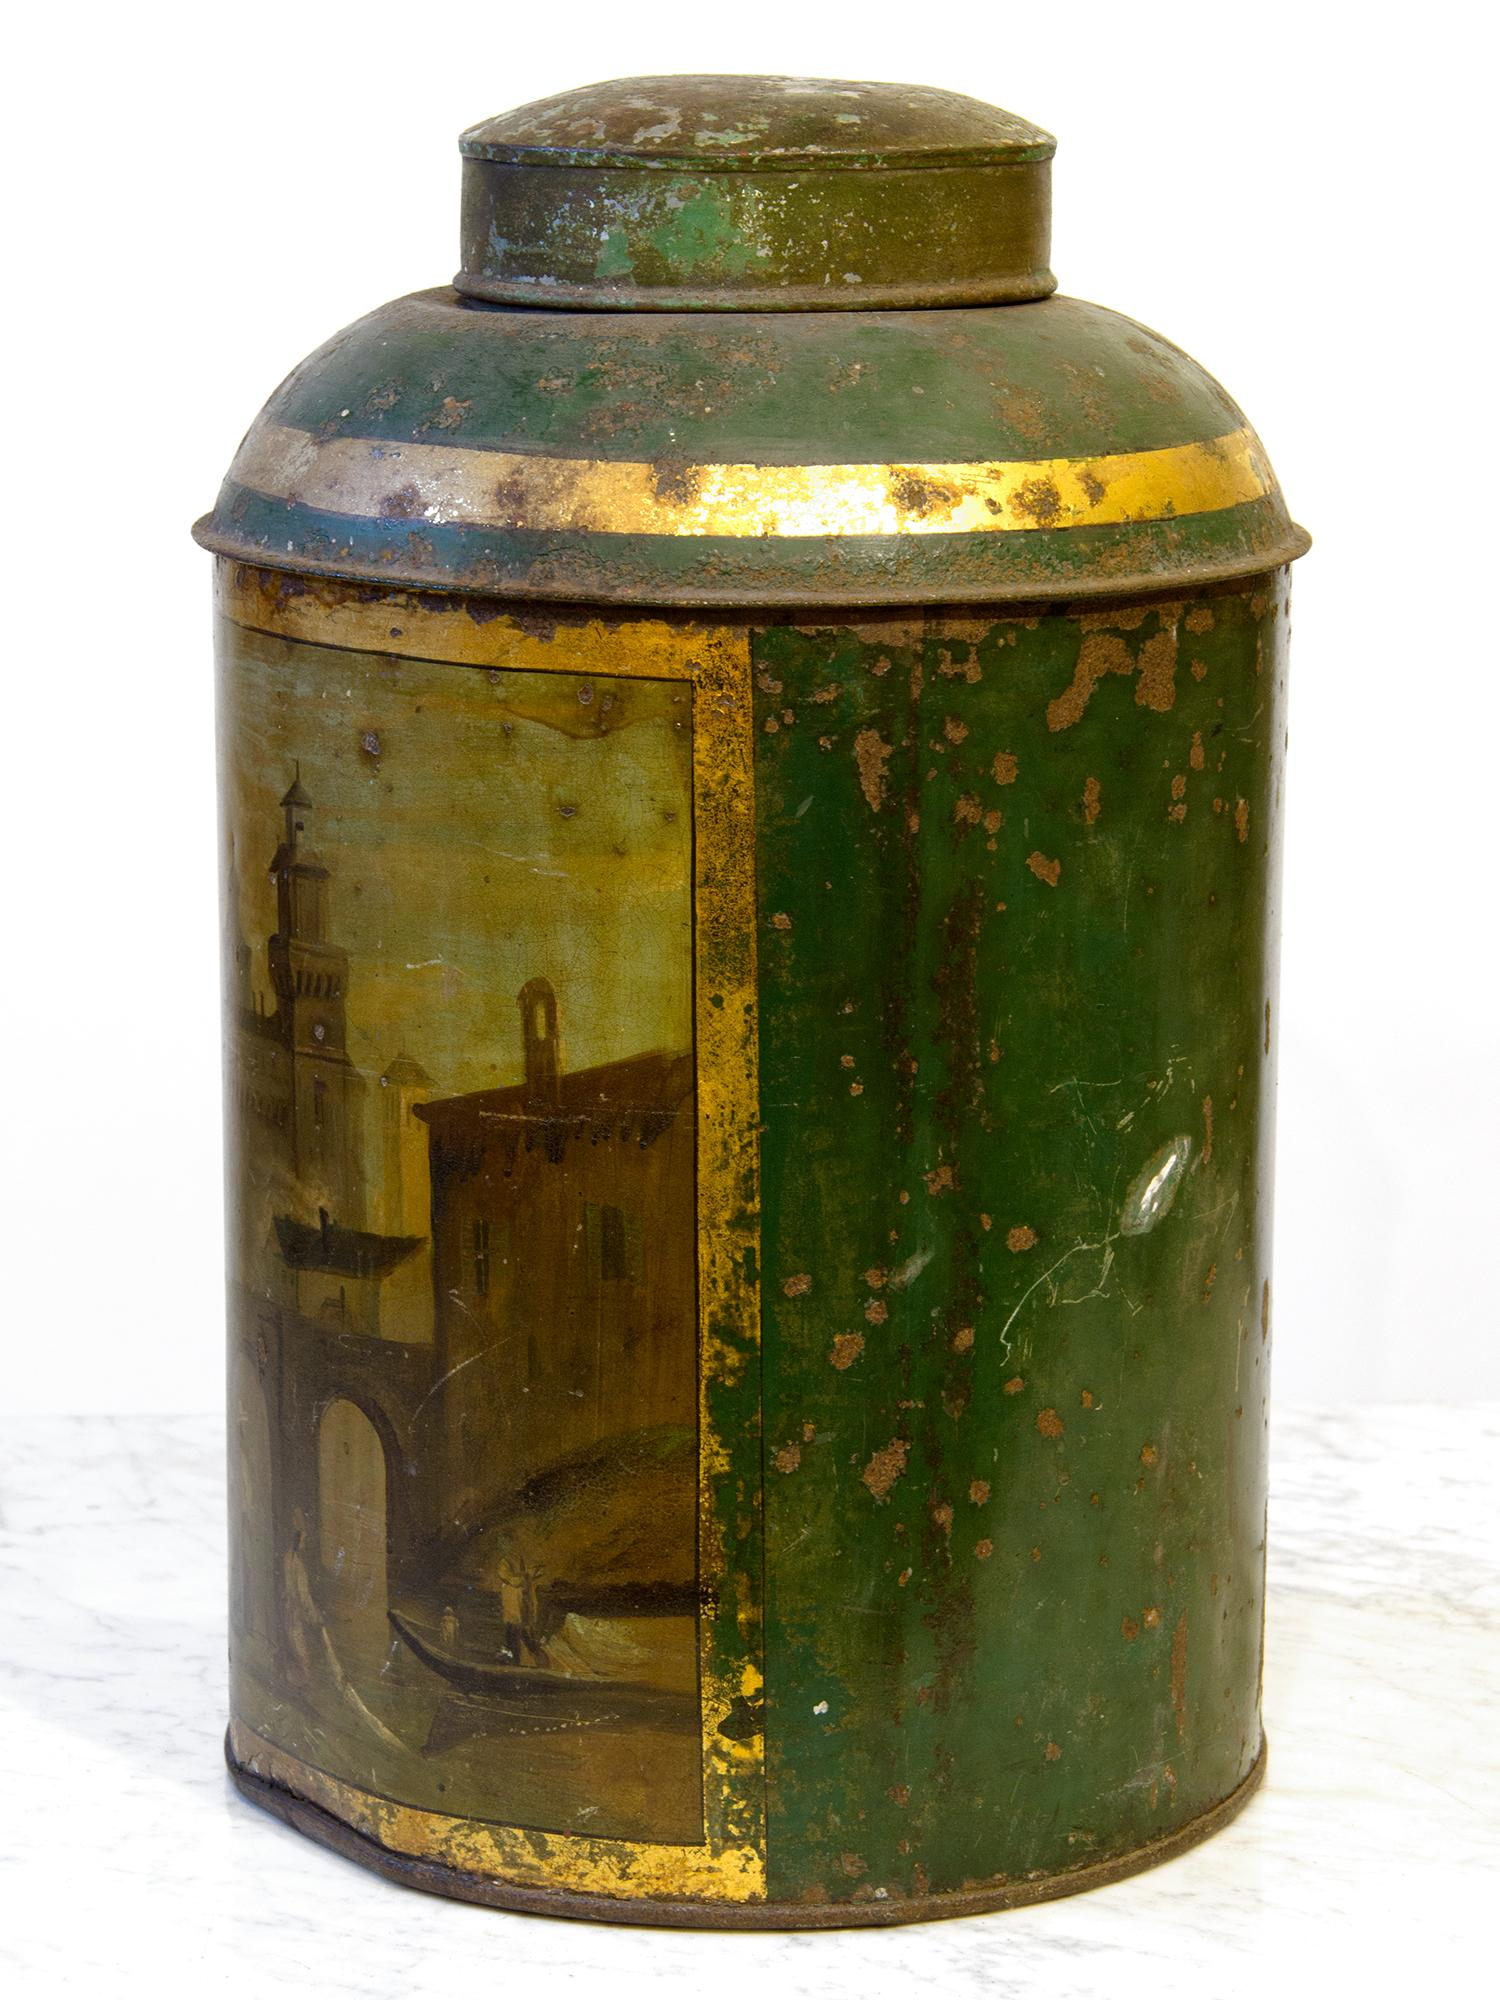 Seems vintage tin canister pity, that